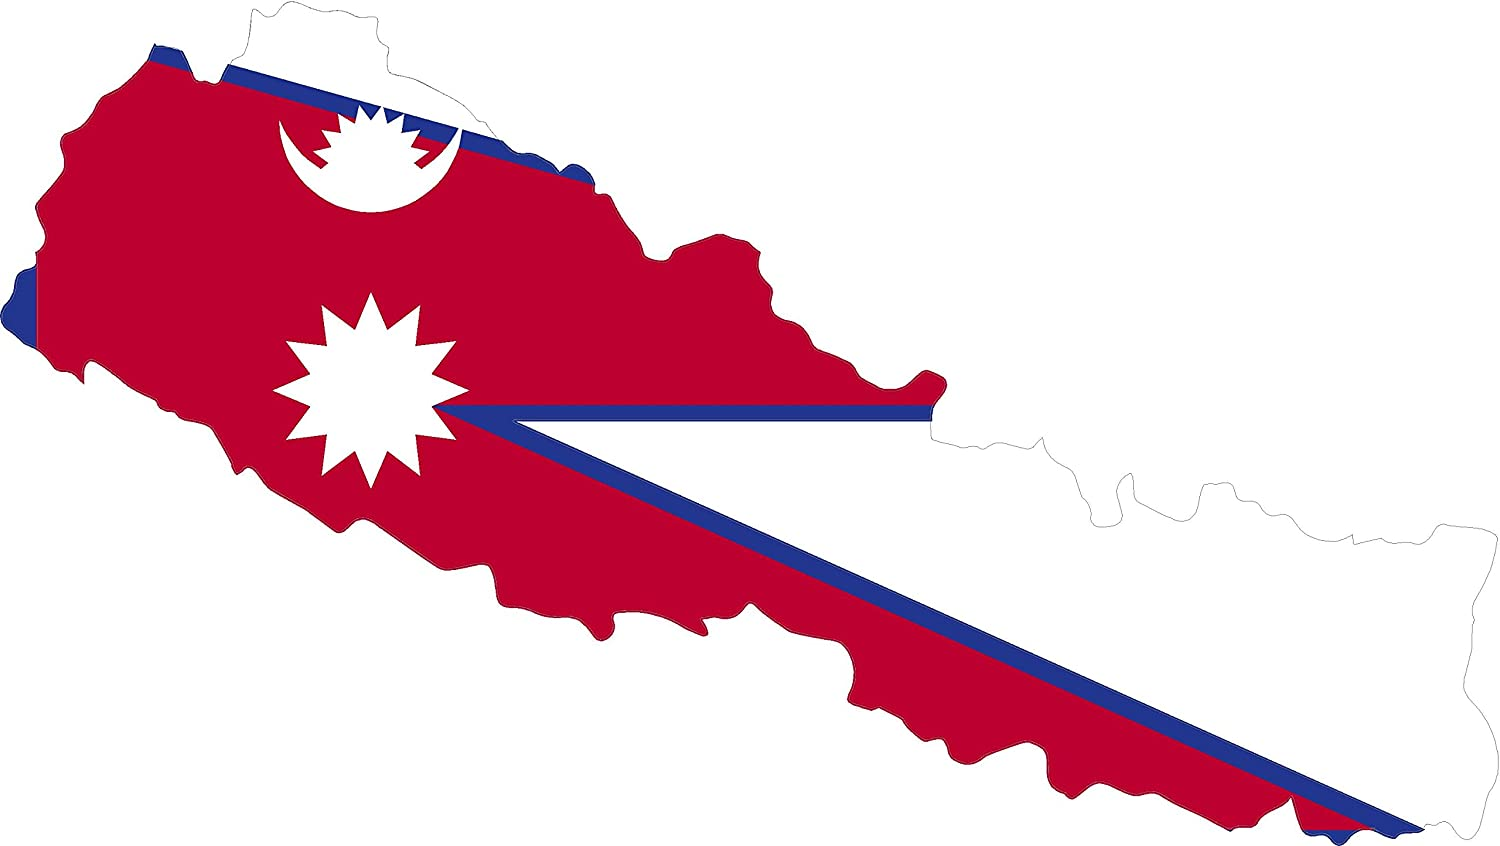 Map with Flag Inside Nepal 4x6.5 Sticker Decal die Cut Vinyl - Made and Shipped in USA